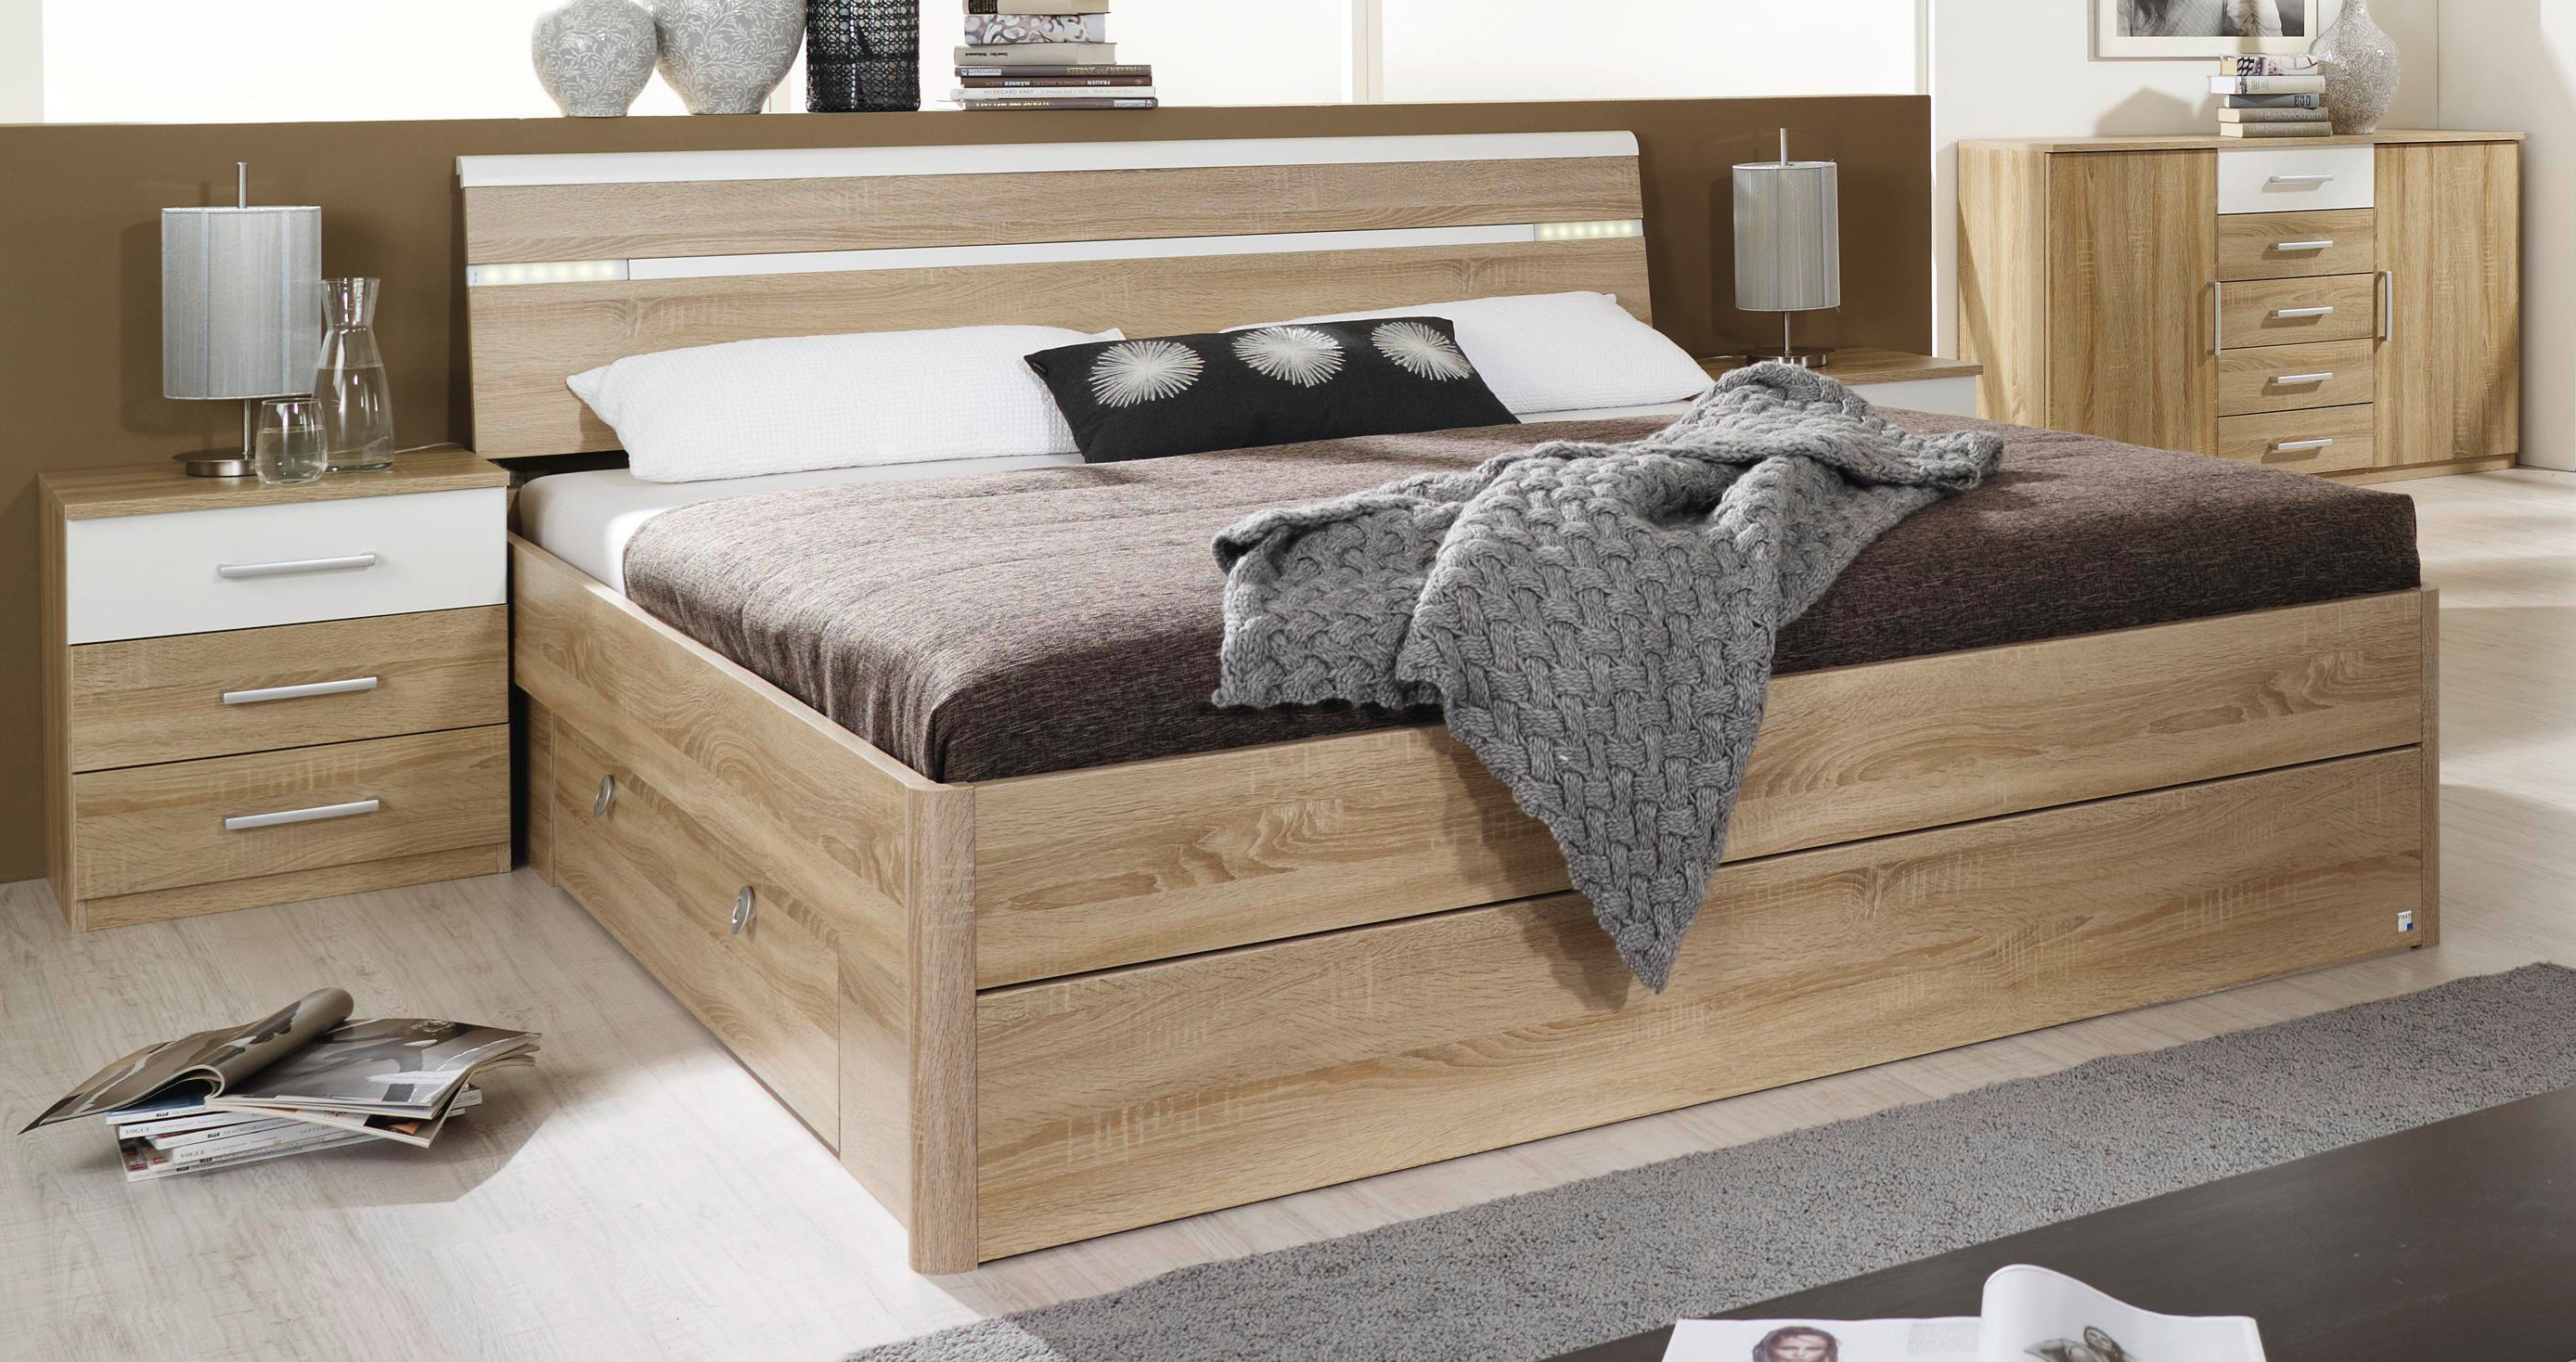 rauch komfortbett mit schubk sten rasa 4 bettgr en w hlbar. Black Bedroom Furniture Sets. Home Design Ideas